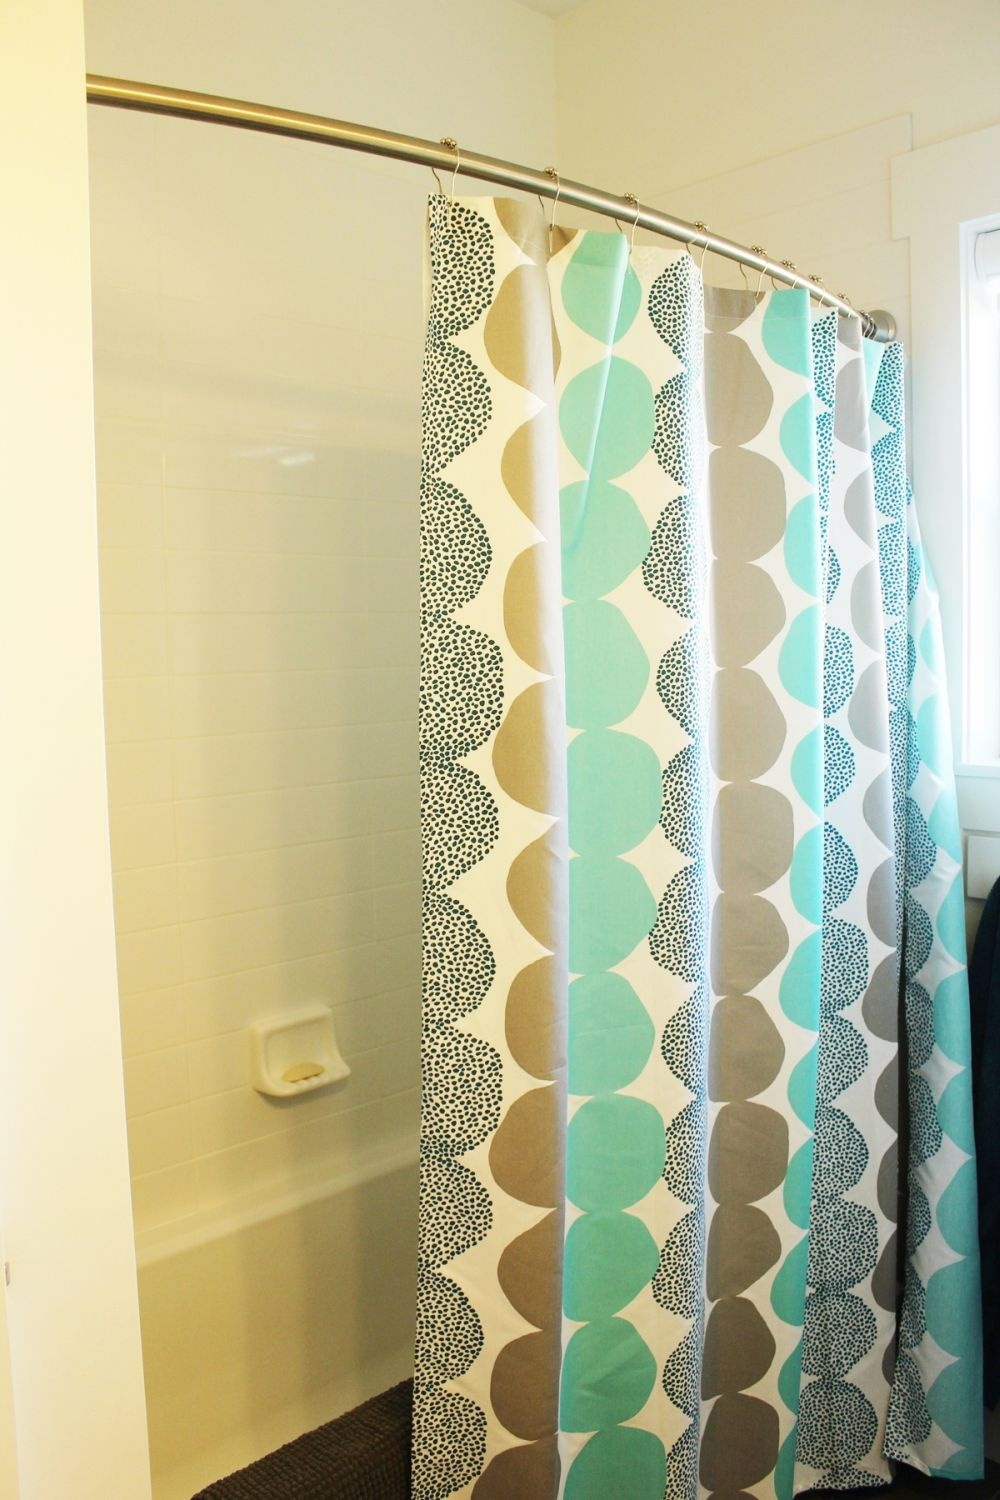 Decorating a narro bathroom by changing the shower curtain